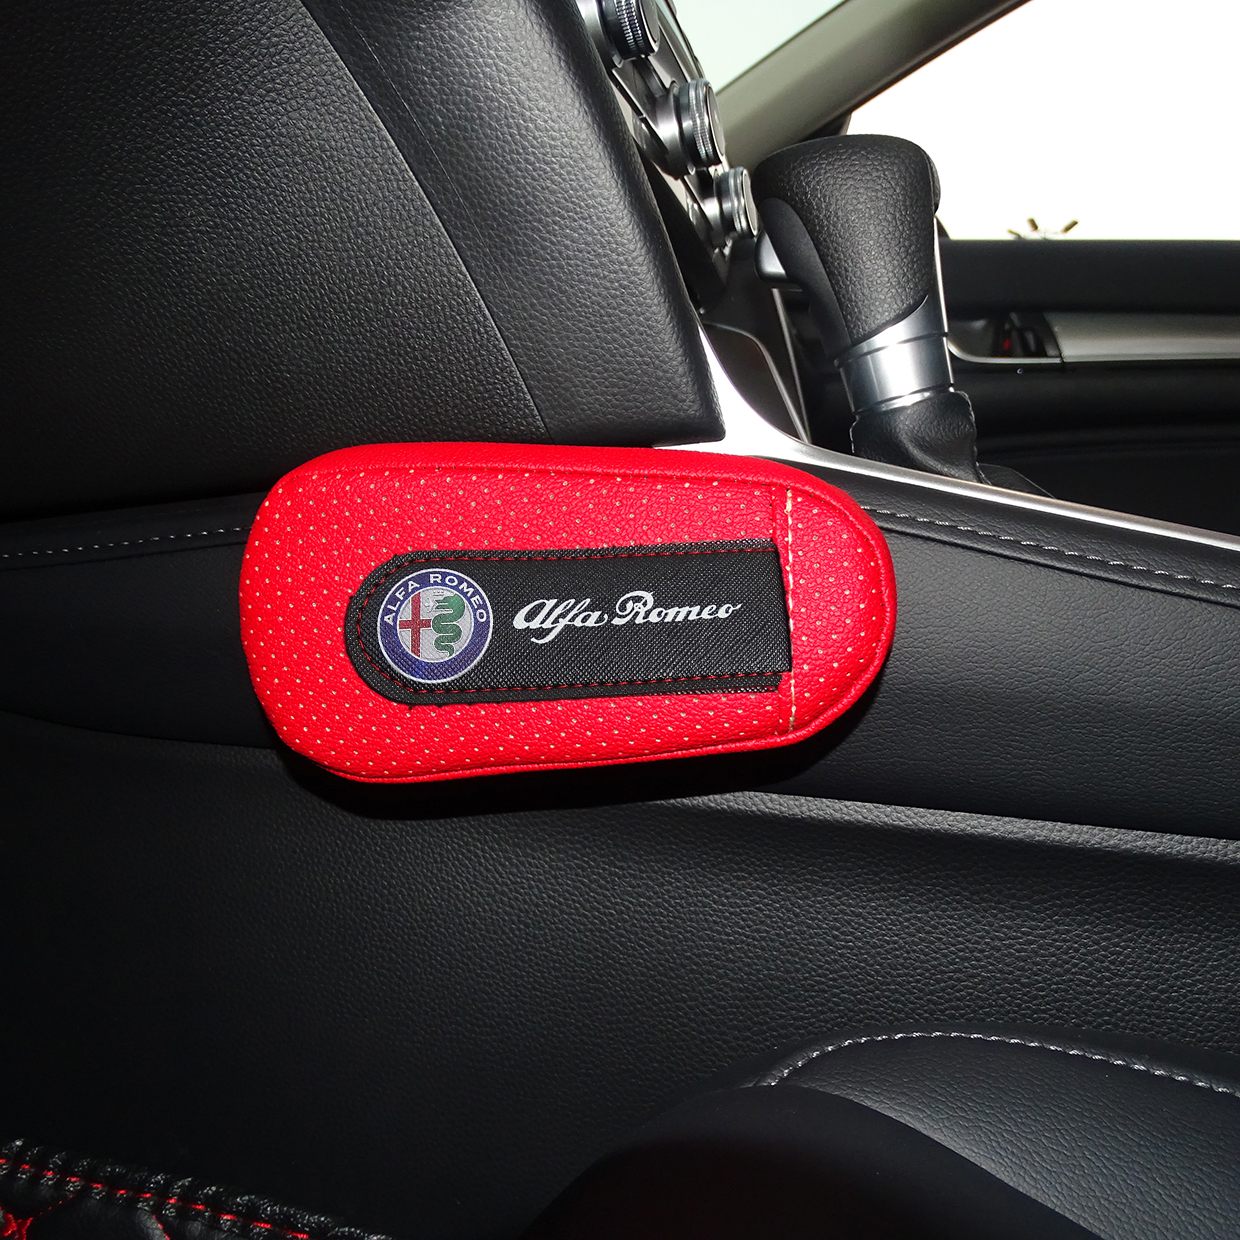 Soft Leather Leg Cushion Knee Pad Armrest pad Interior For ALFA ROMEO Mito 147 156 159 166 Giulietta Giulia Mito Spider GT